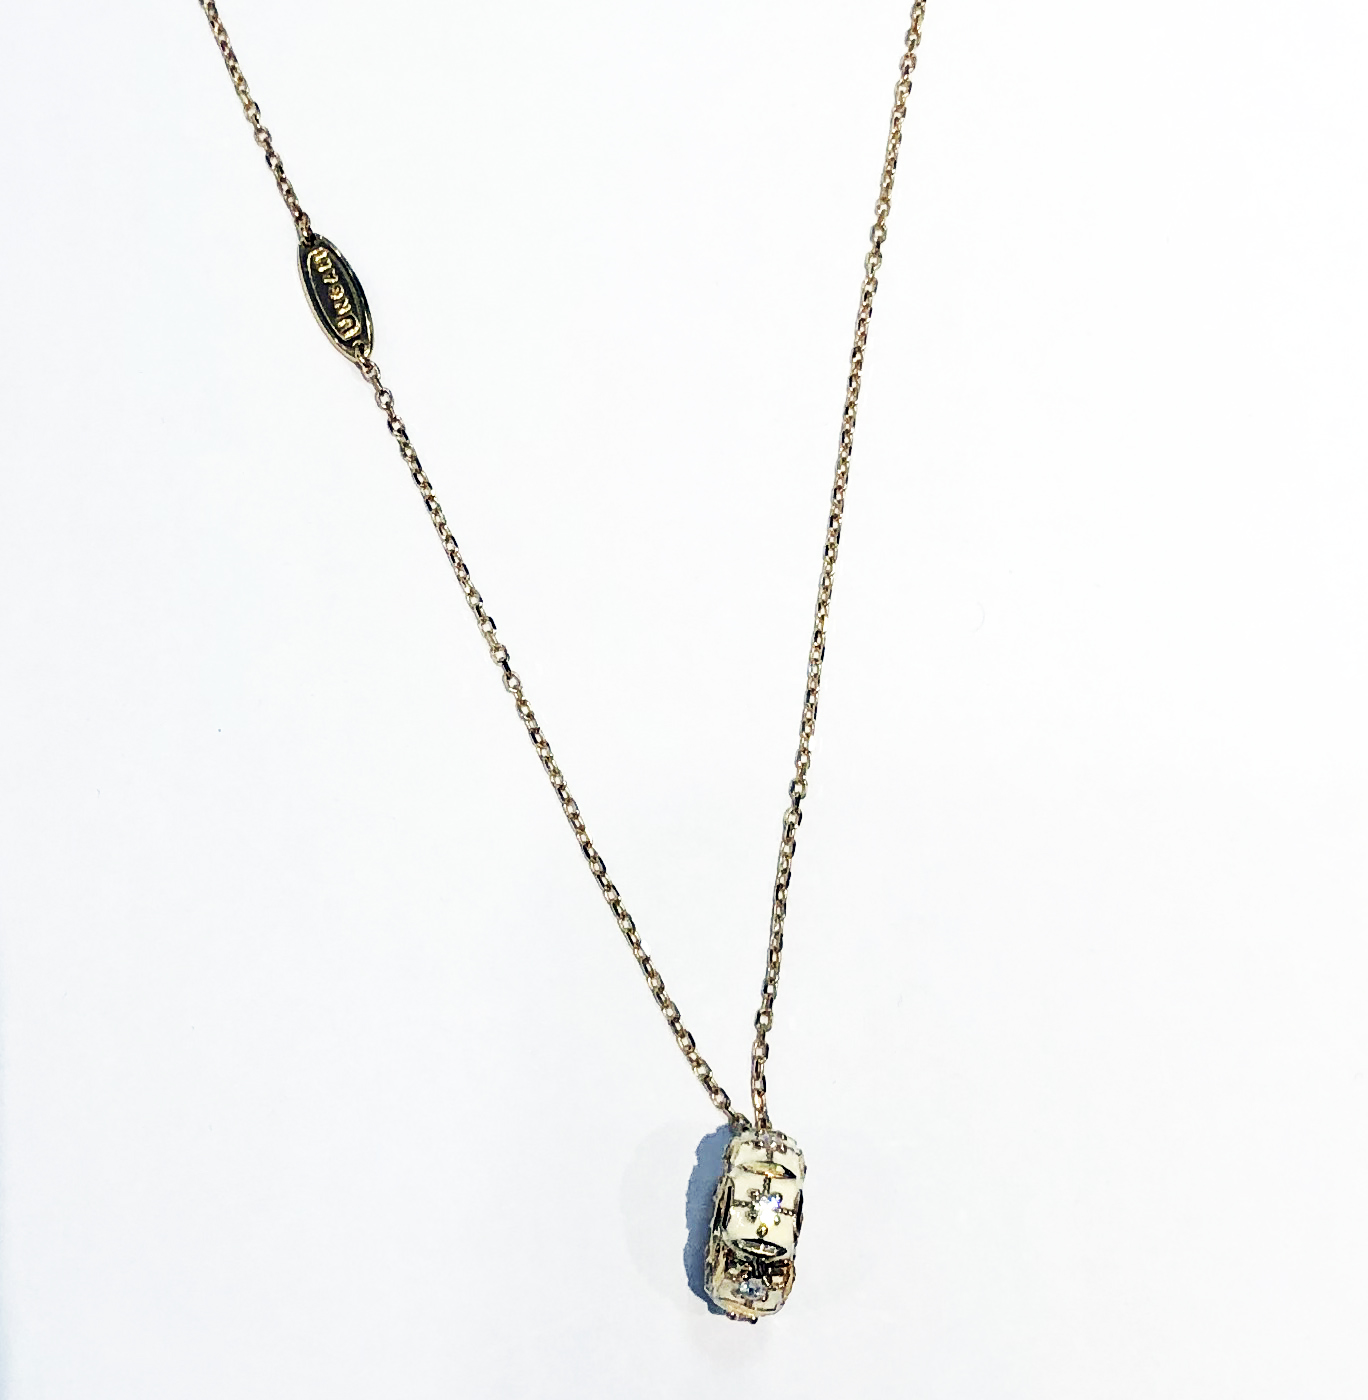 Lorenzo Ungari NECKLACE YELLOW GOLD, CL S 0540